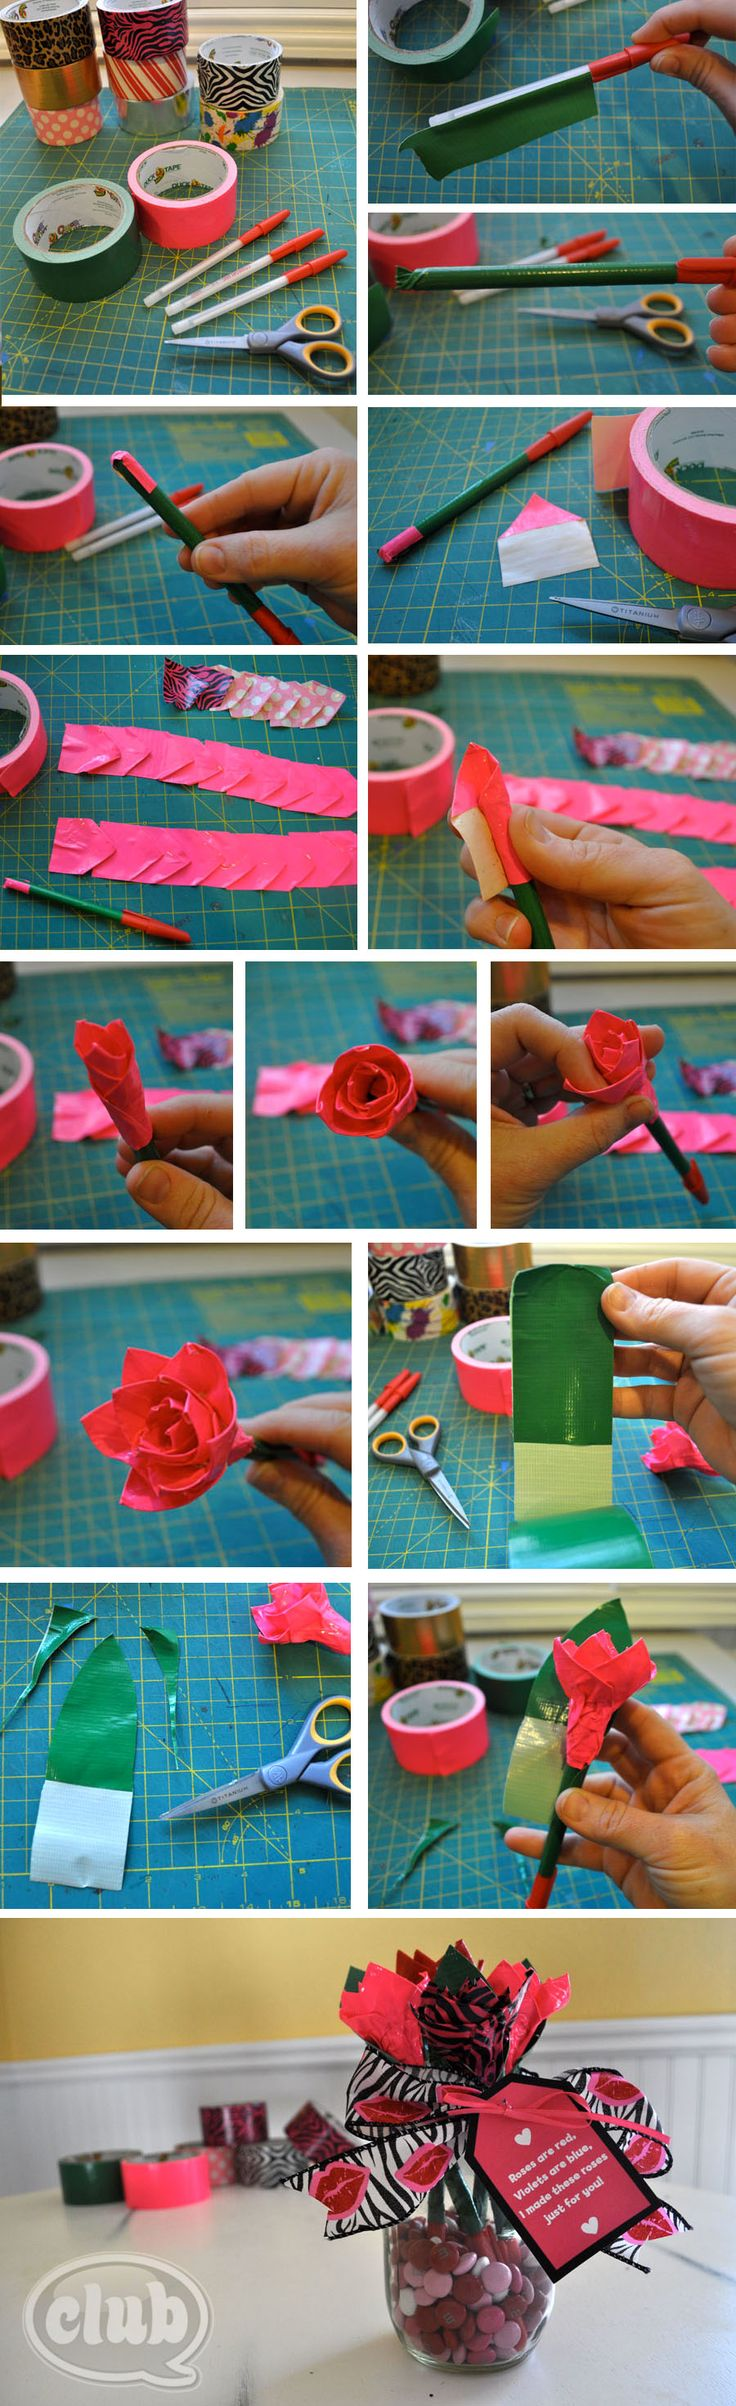 Make your own duck tape rose pen bouquet | Tween Crafts - Connecting Mom and Daughter through crafting